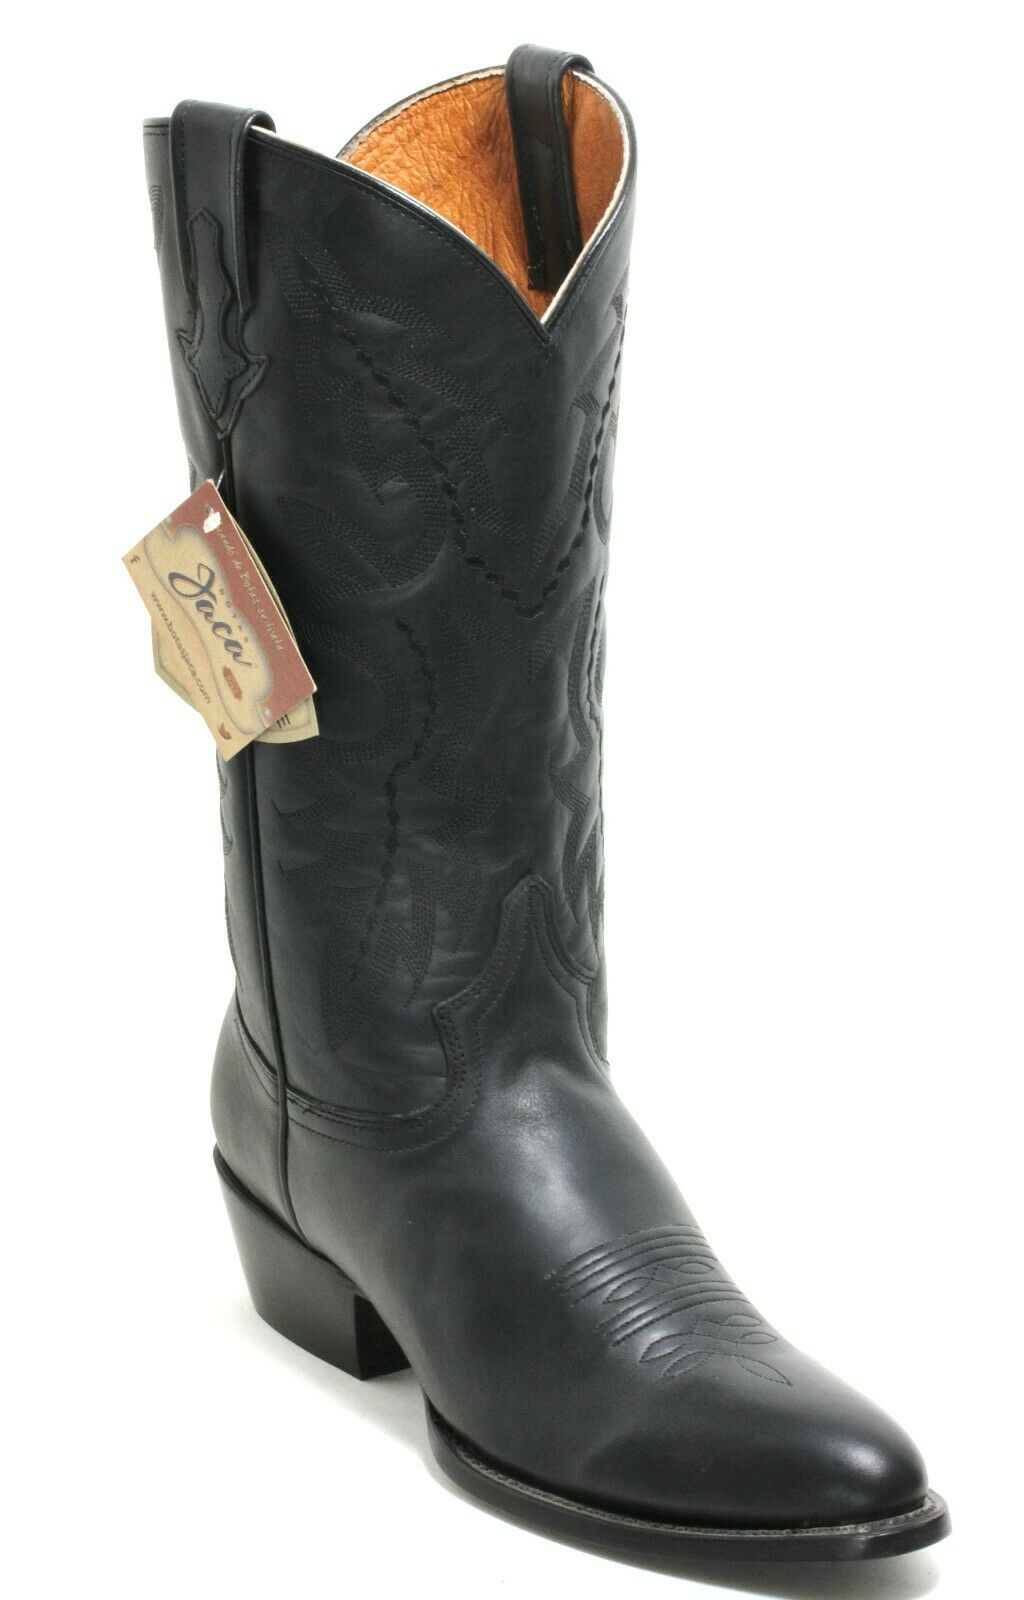 323 Cowboy Boots Westernstiefel Texas Boots Catalan Style Leather Jaca 42